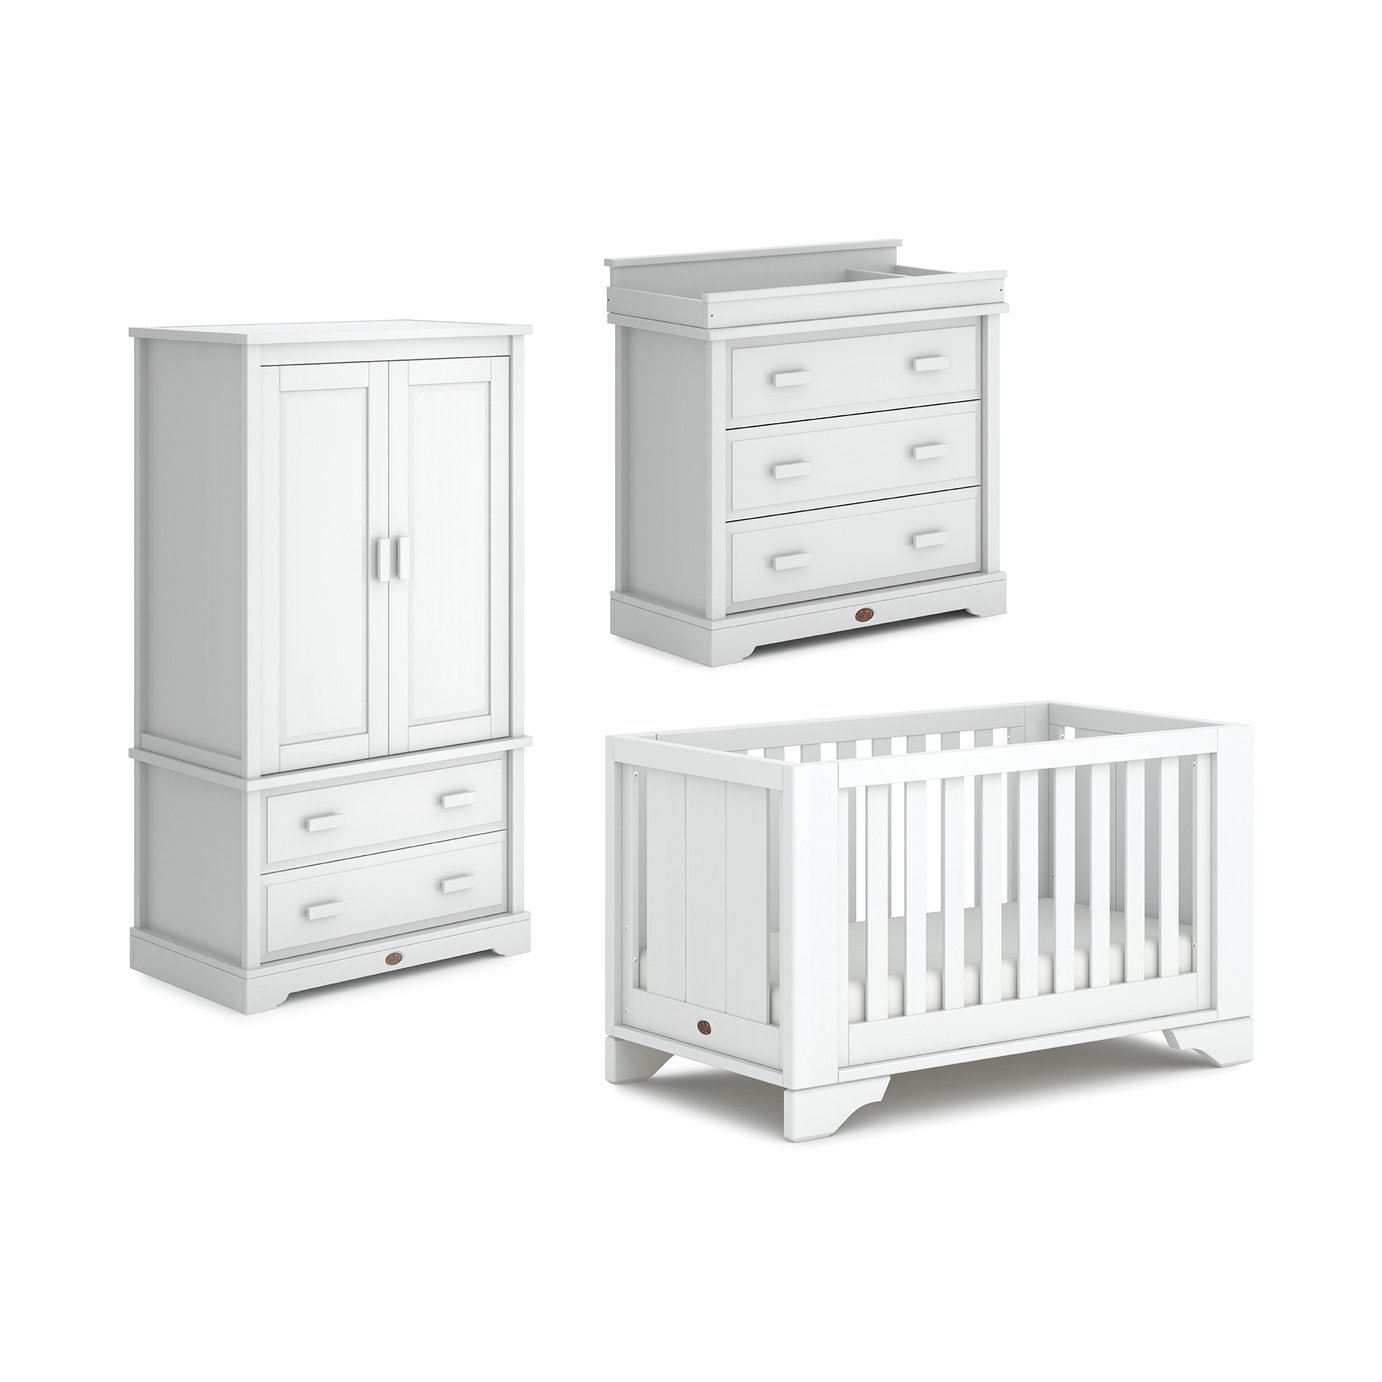 Boori Eton Expandable 3 Piece Set - White